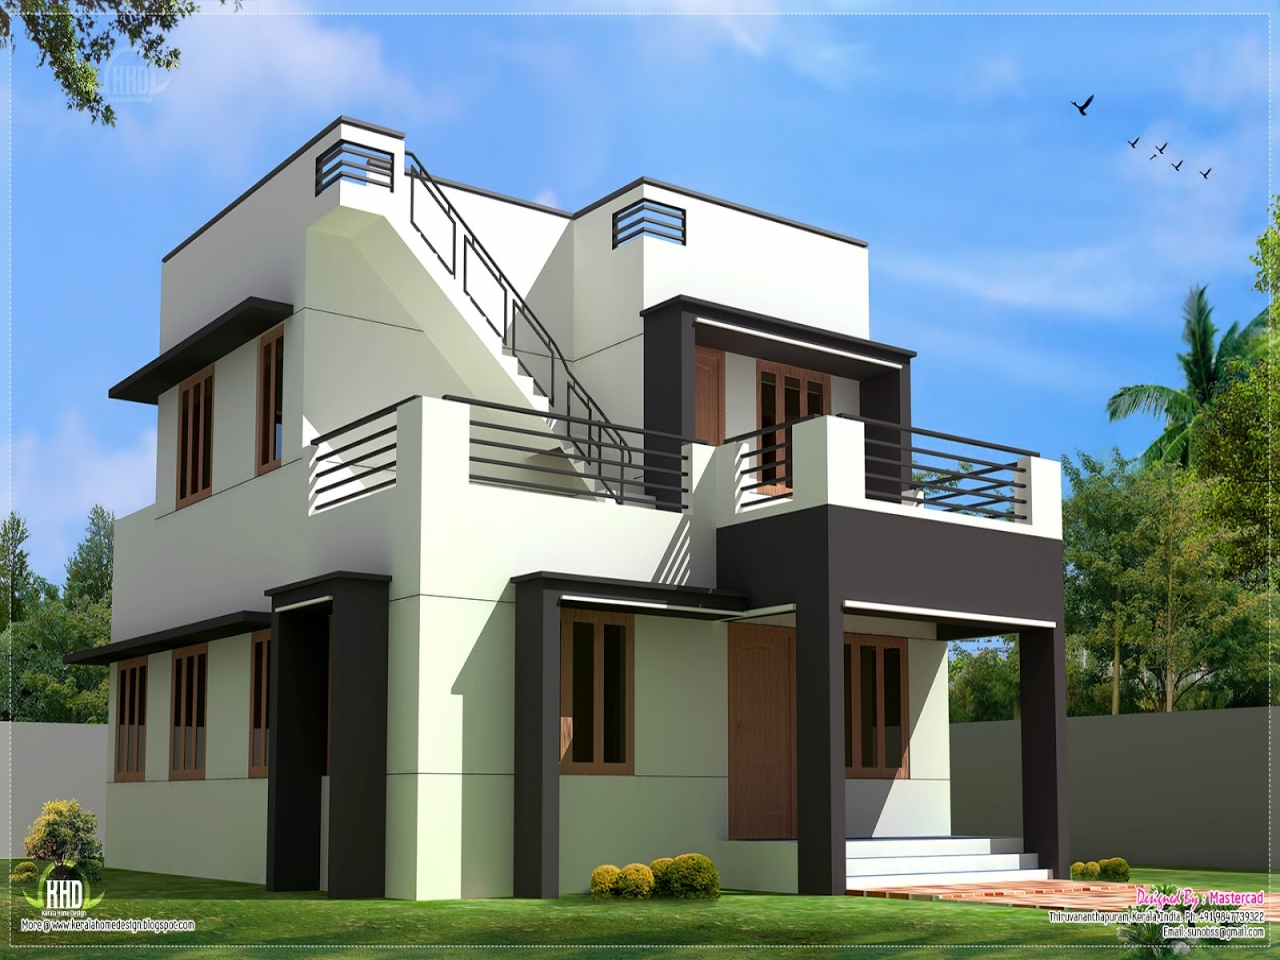 Collection 50 Beautiful Narrow House Design For A 2 Story Floor Home With Small Lot